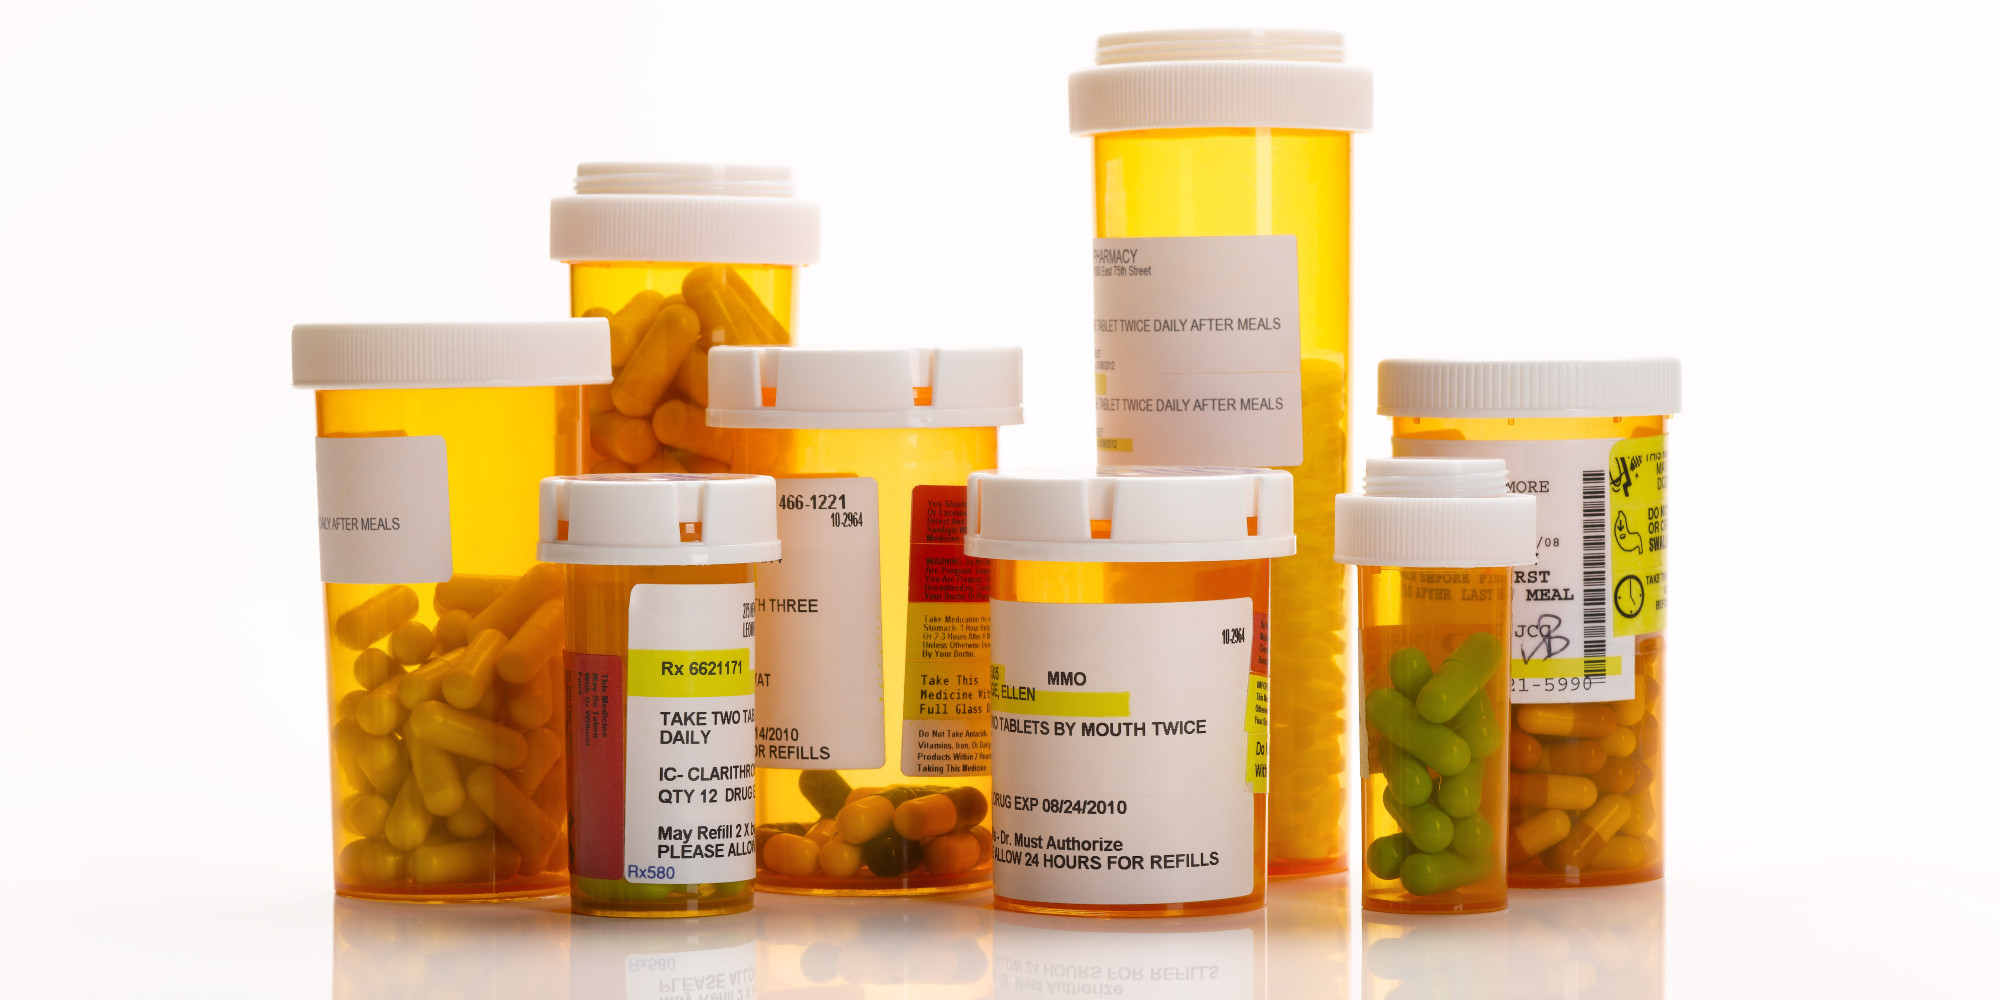 Missing Out on Prescription Medicine Damages Health